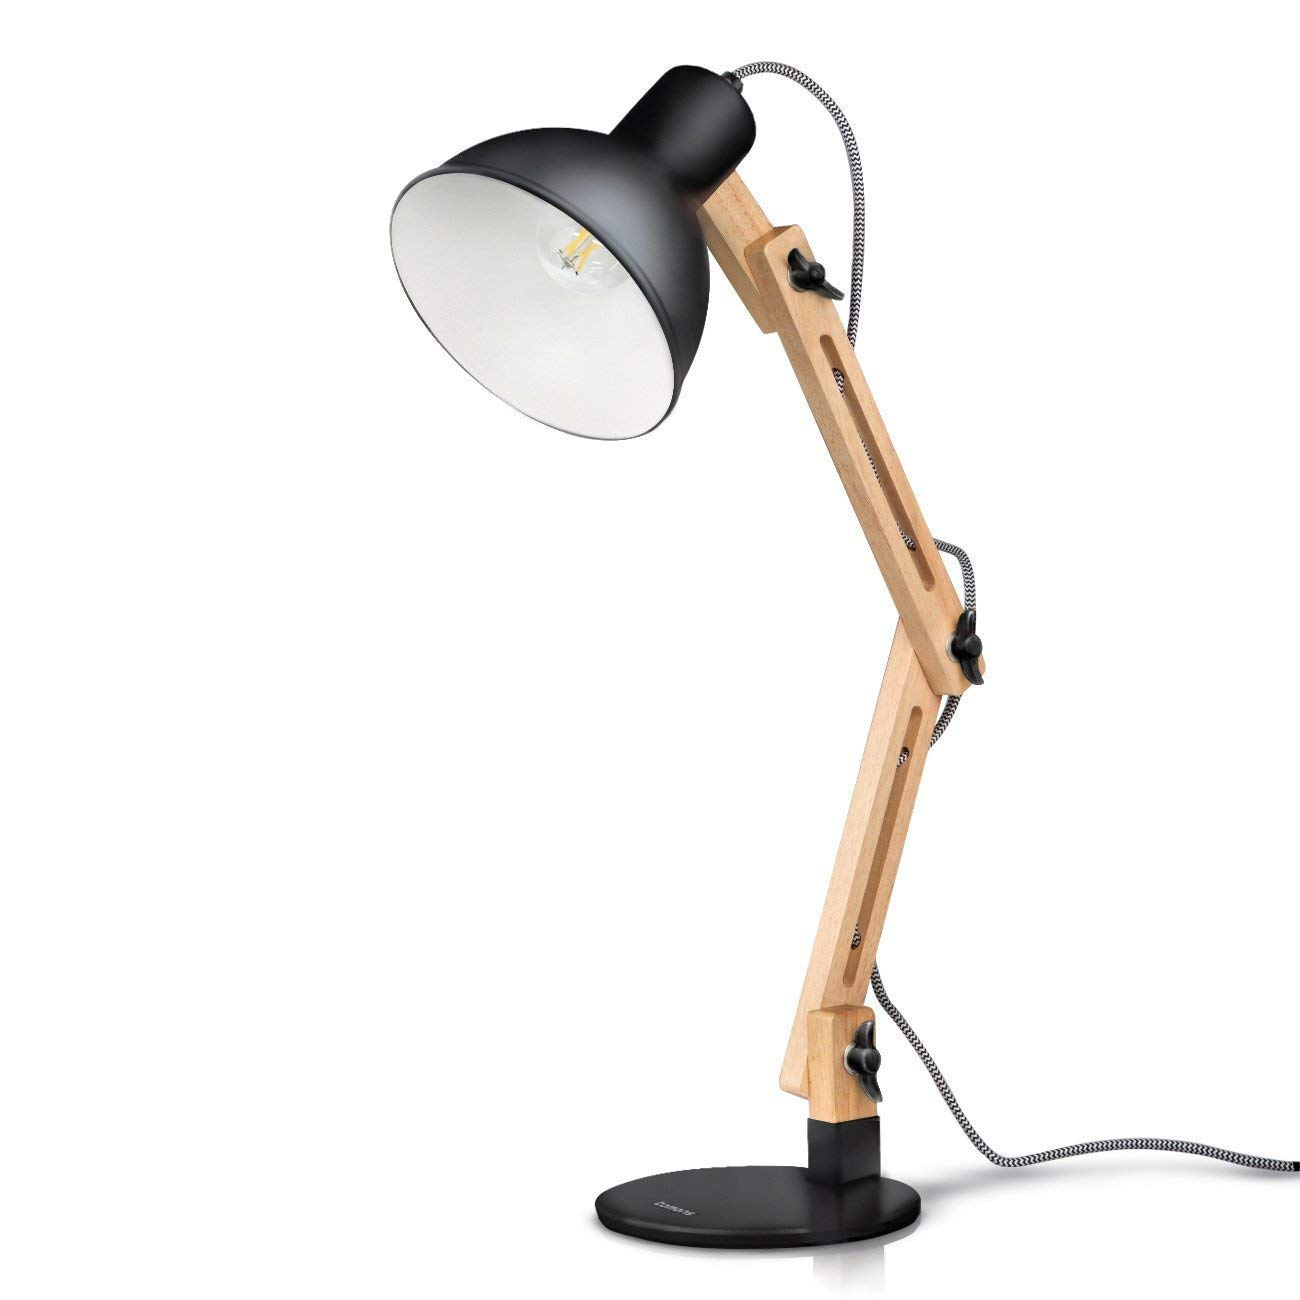 Led Lamps Fast Deliver Zyynew Simple Creative Led Eye Protection Table Lamps Reading Working Light Desk Lamp Pen Holder Lighting Soft For Study Bedroom